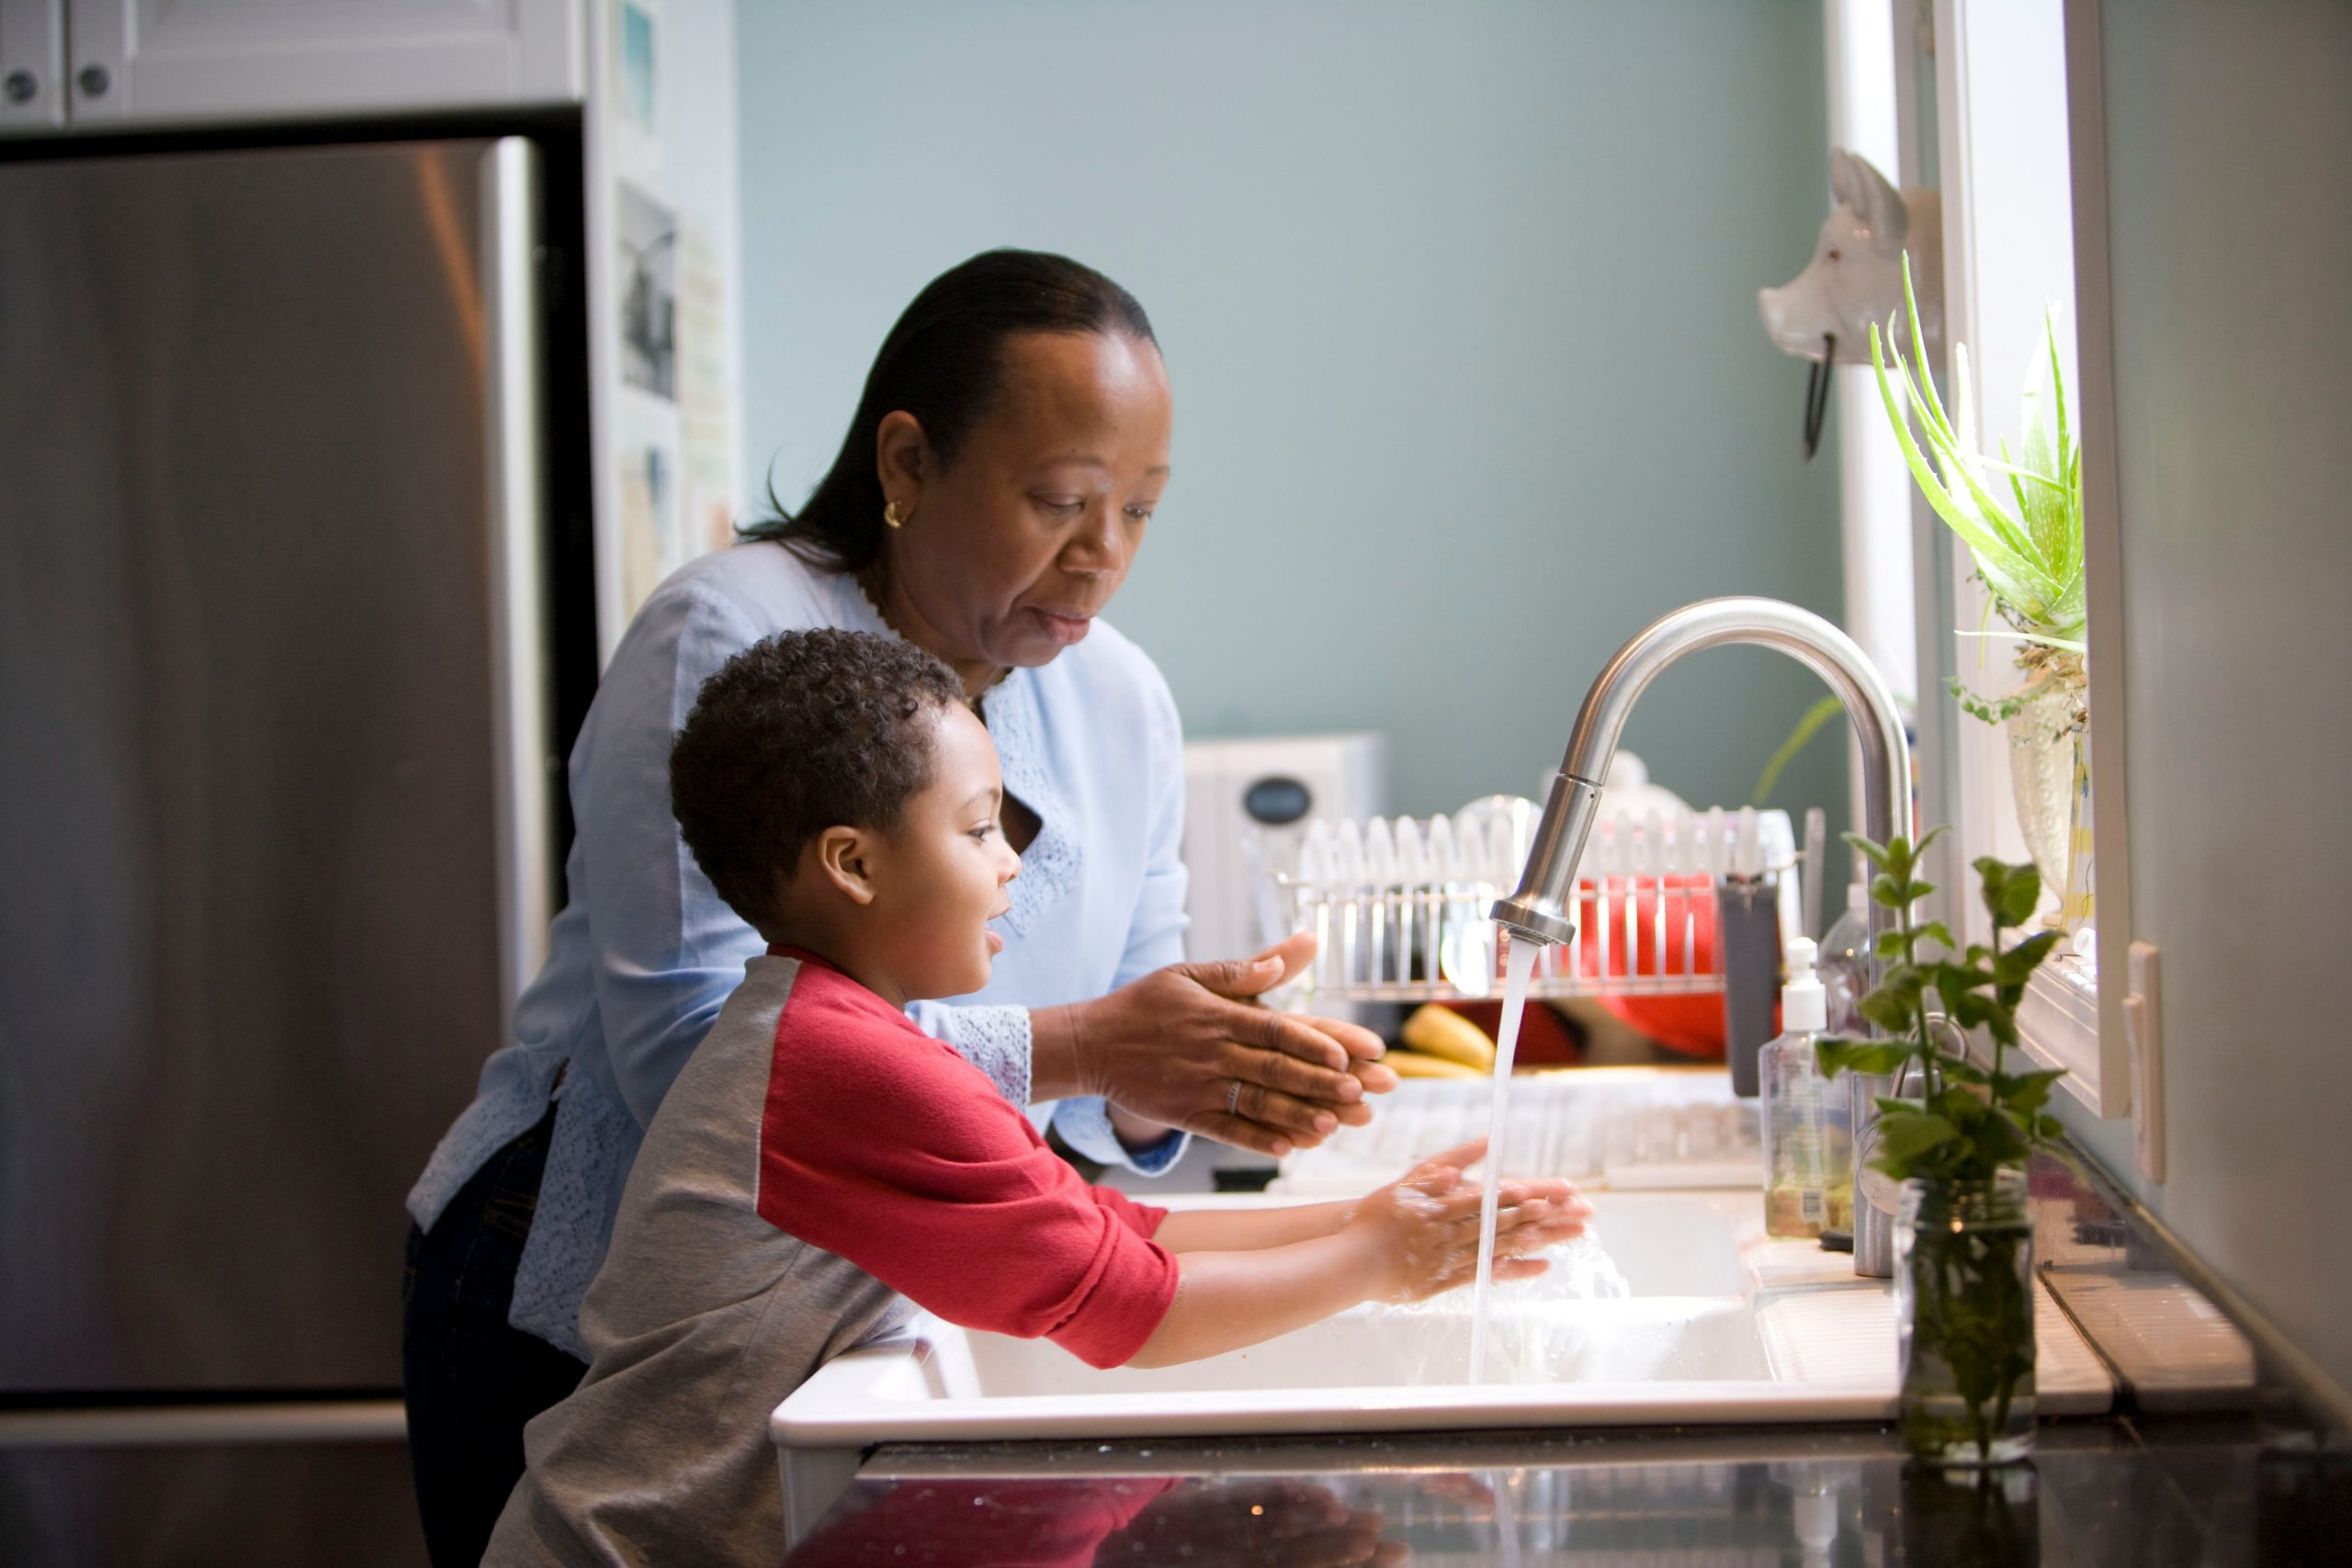 common Practices to Protect Your Child from Infections